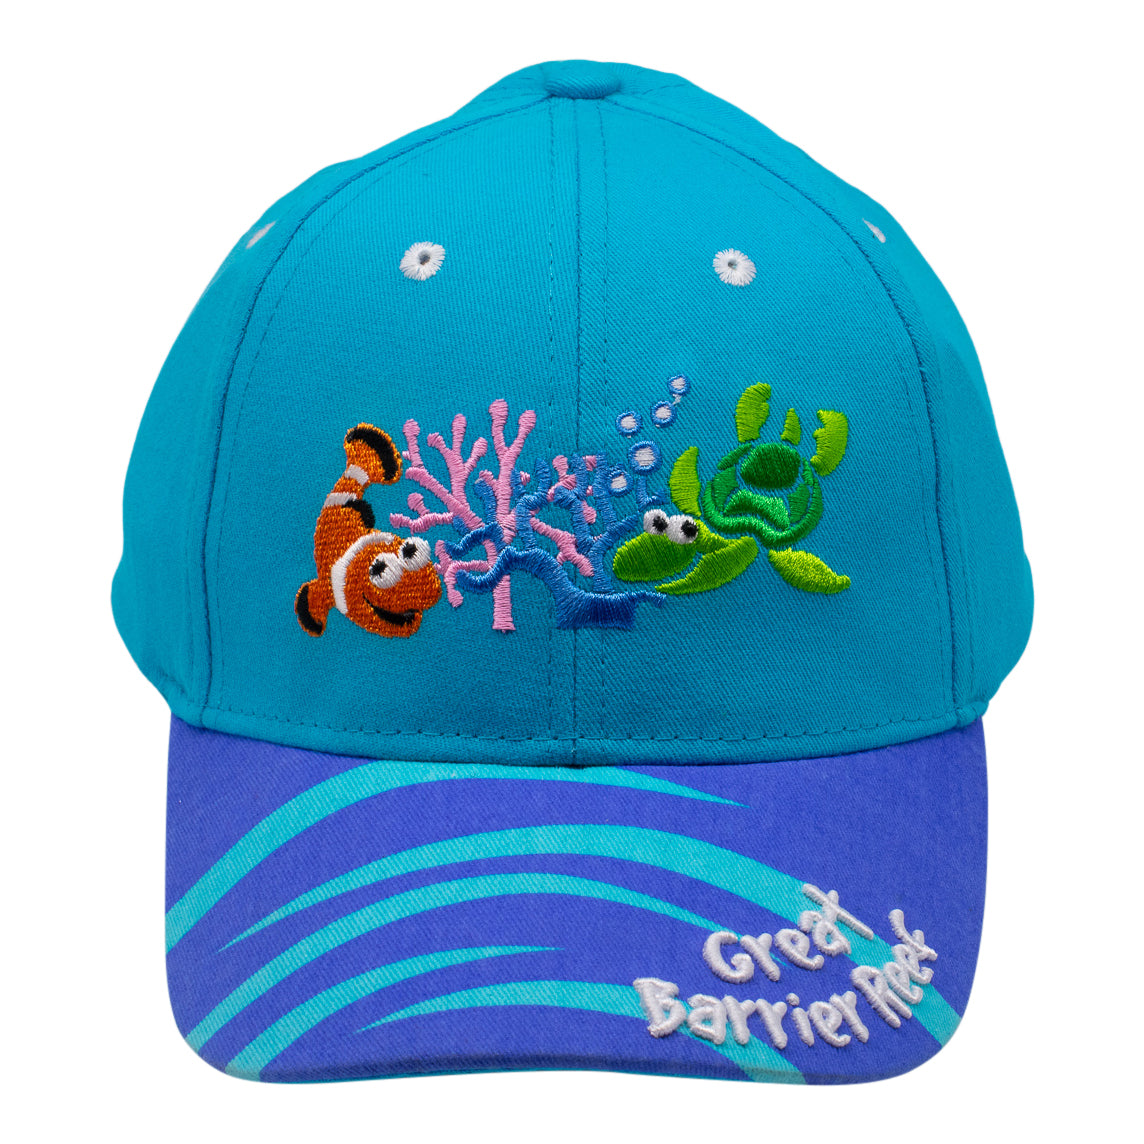 Kids cap Australia- Great Barrier Reef - aqua-Kids caps-Oz About Oz